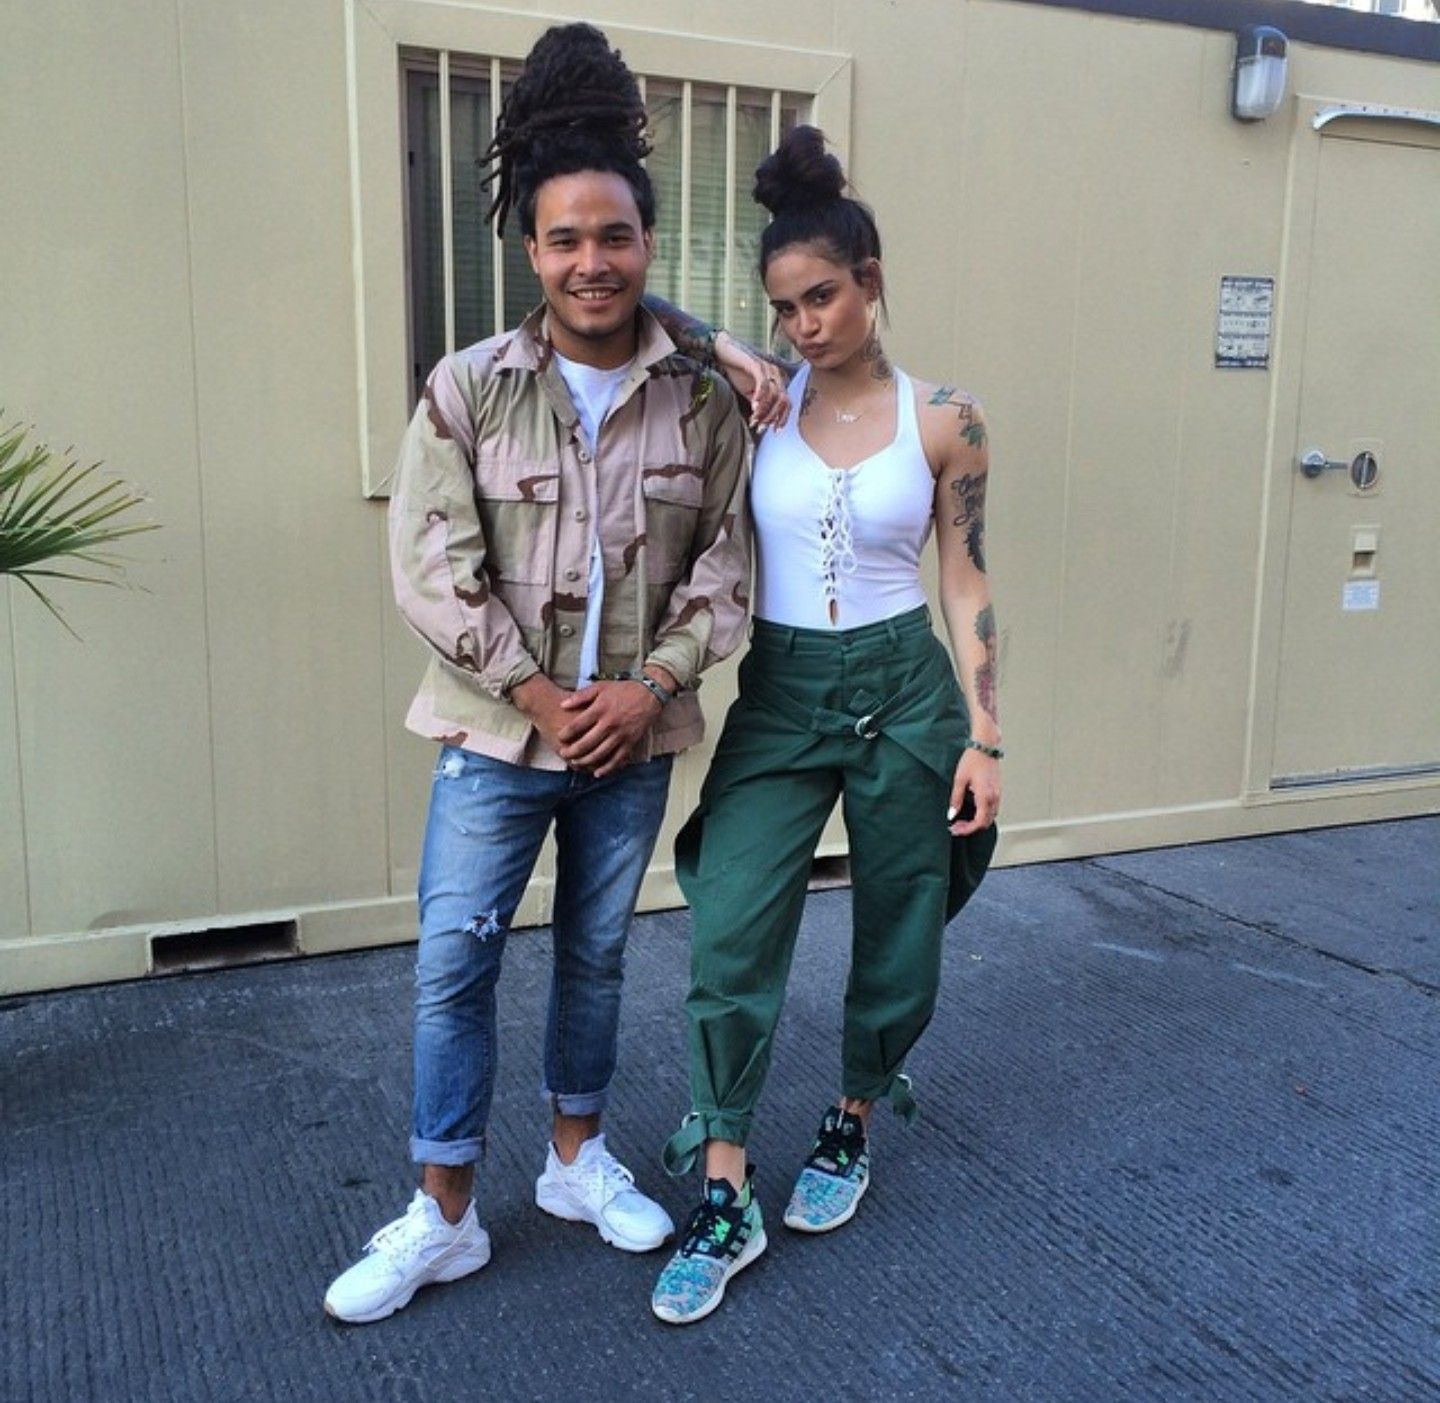 Kehlani And Daniel Outfits - 2015 Of Style Fashion